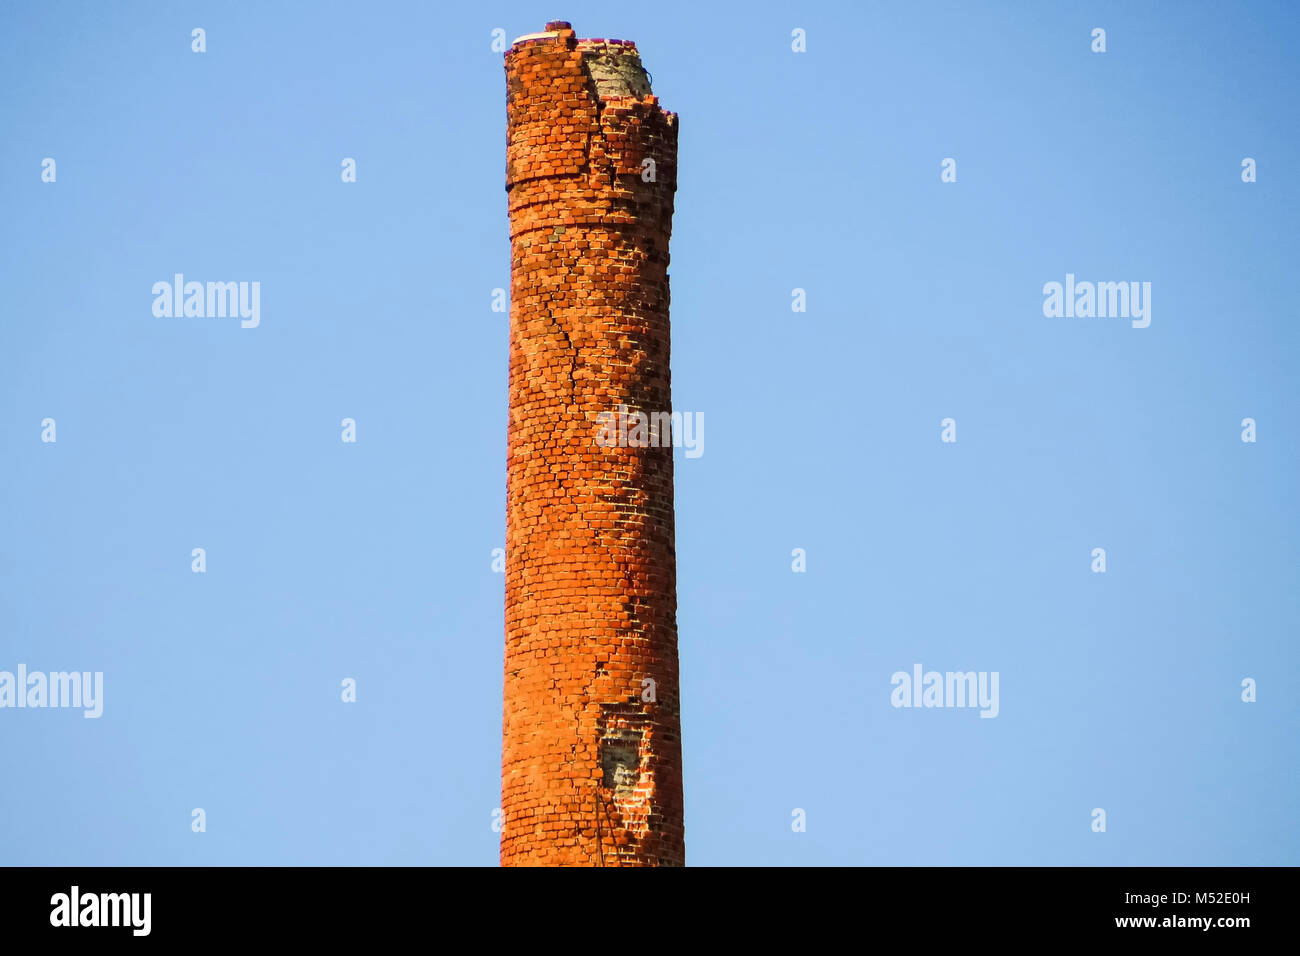 Factory ruin chimney - Stock Image